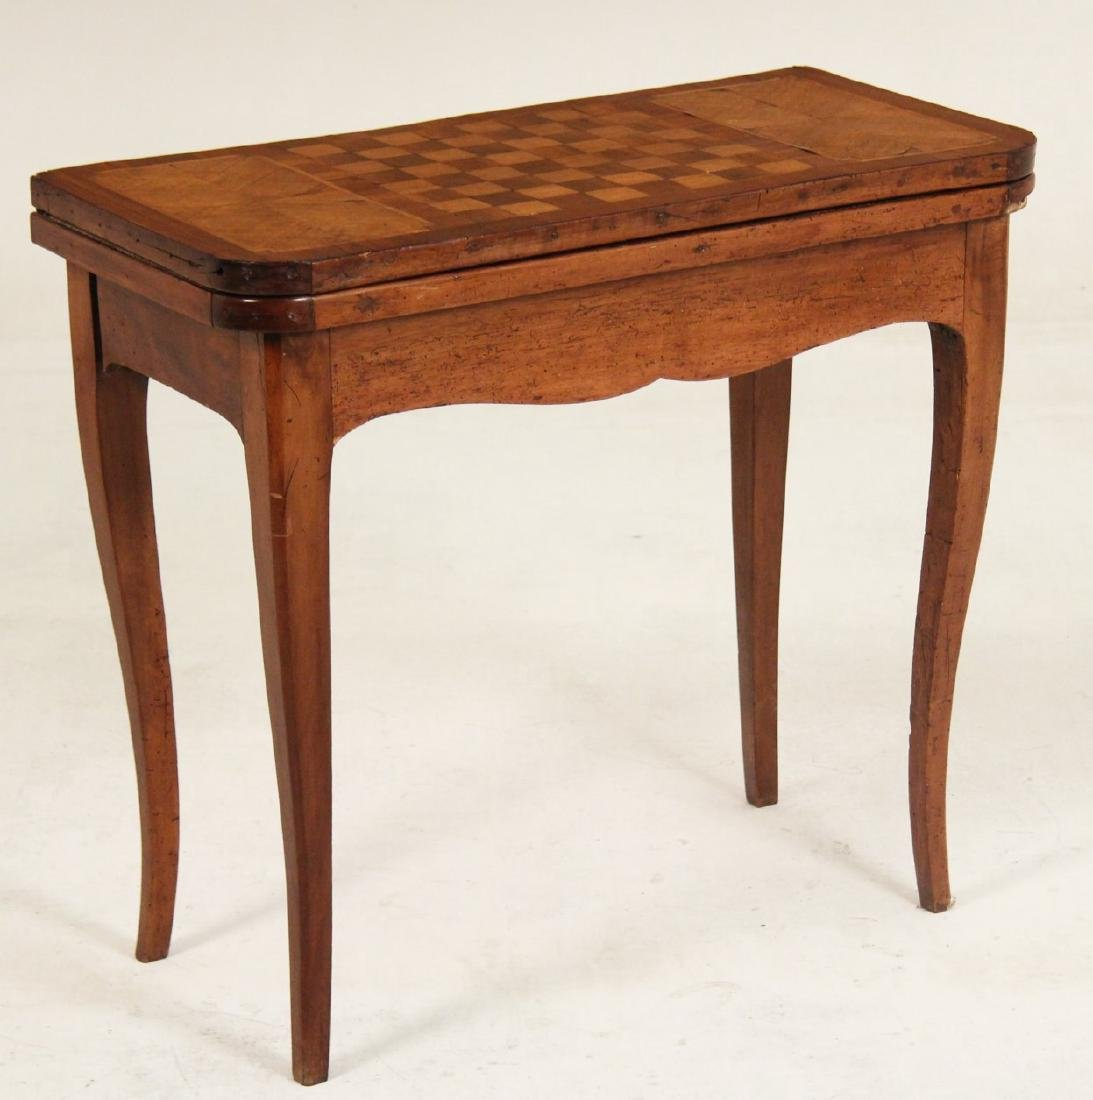 19TH C. PROVINCIAL FRENCH WALNUT GAMES TABLE